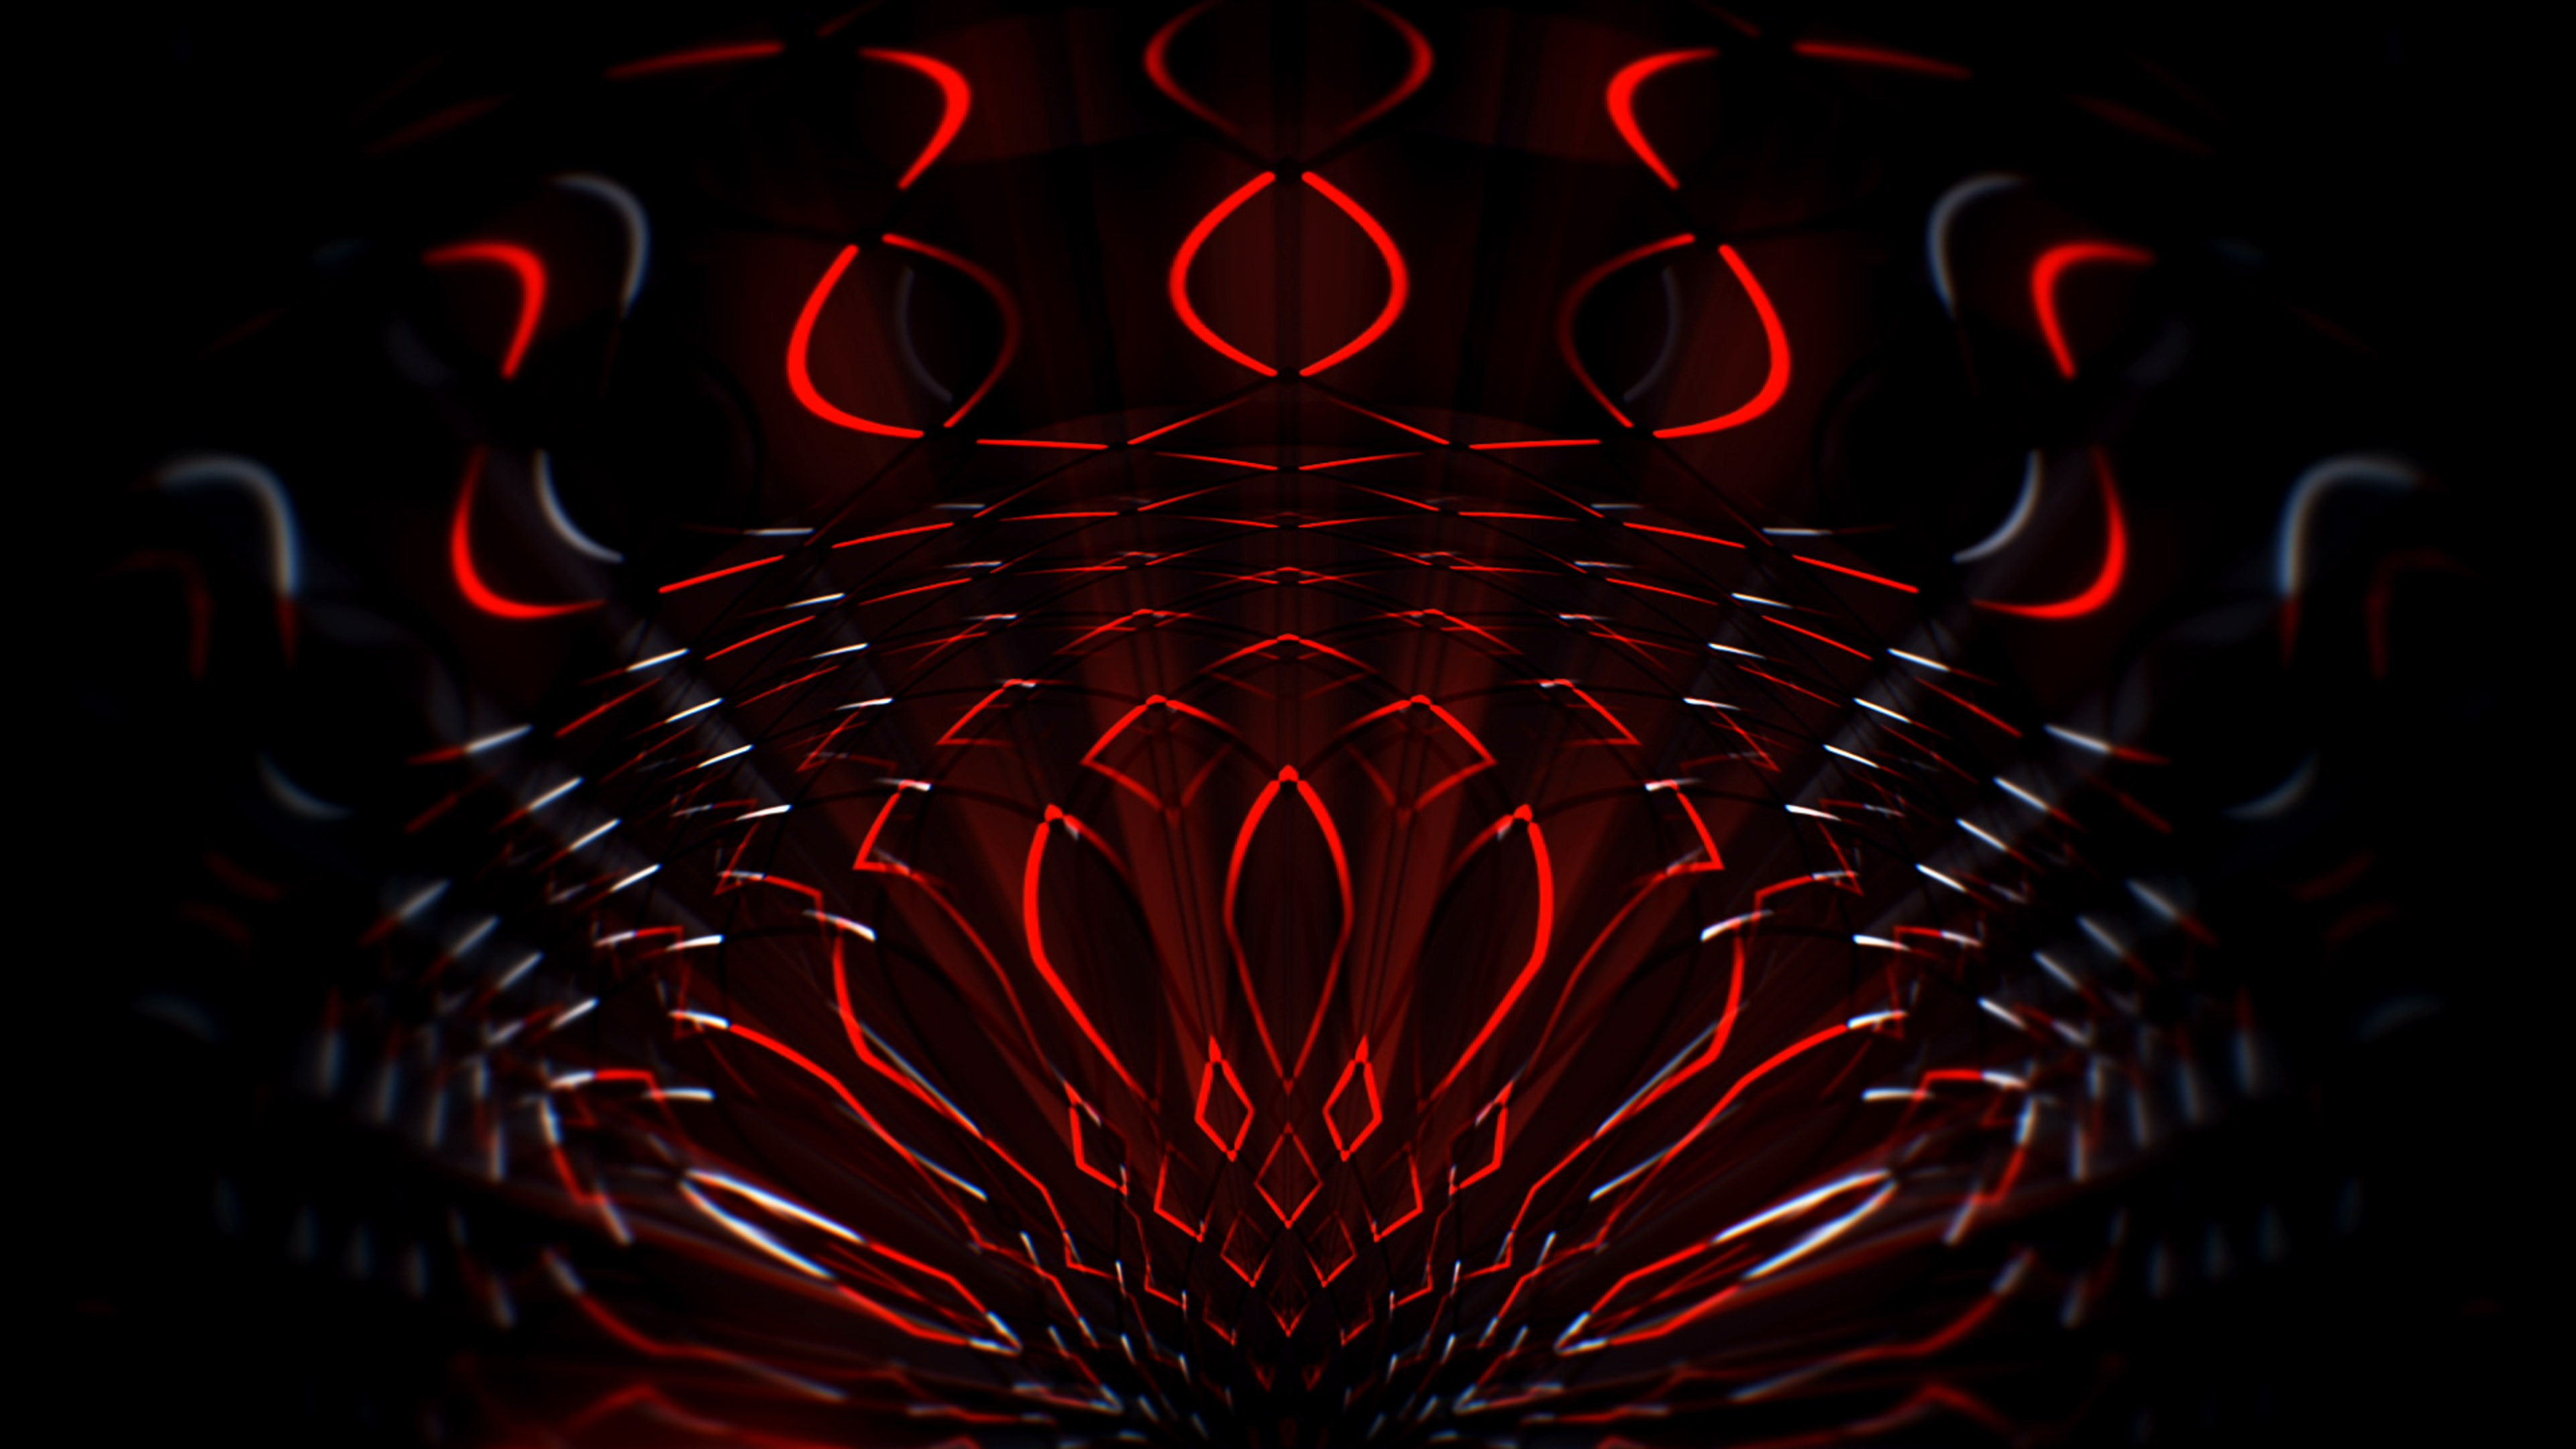 vj loop chakra animation strobe edm visuals